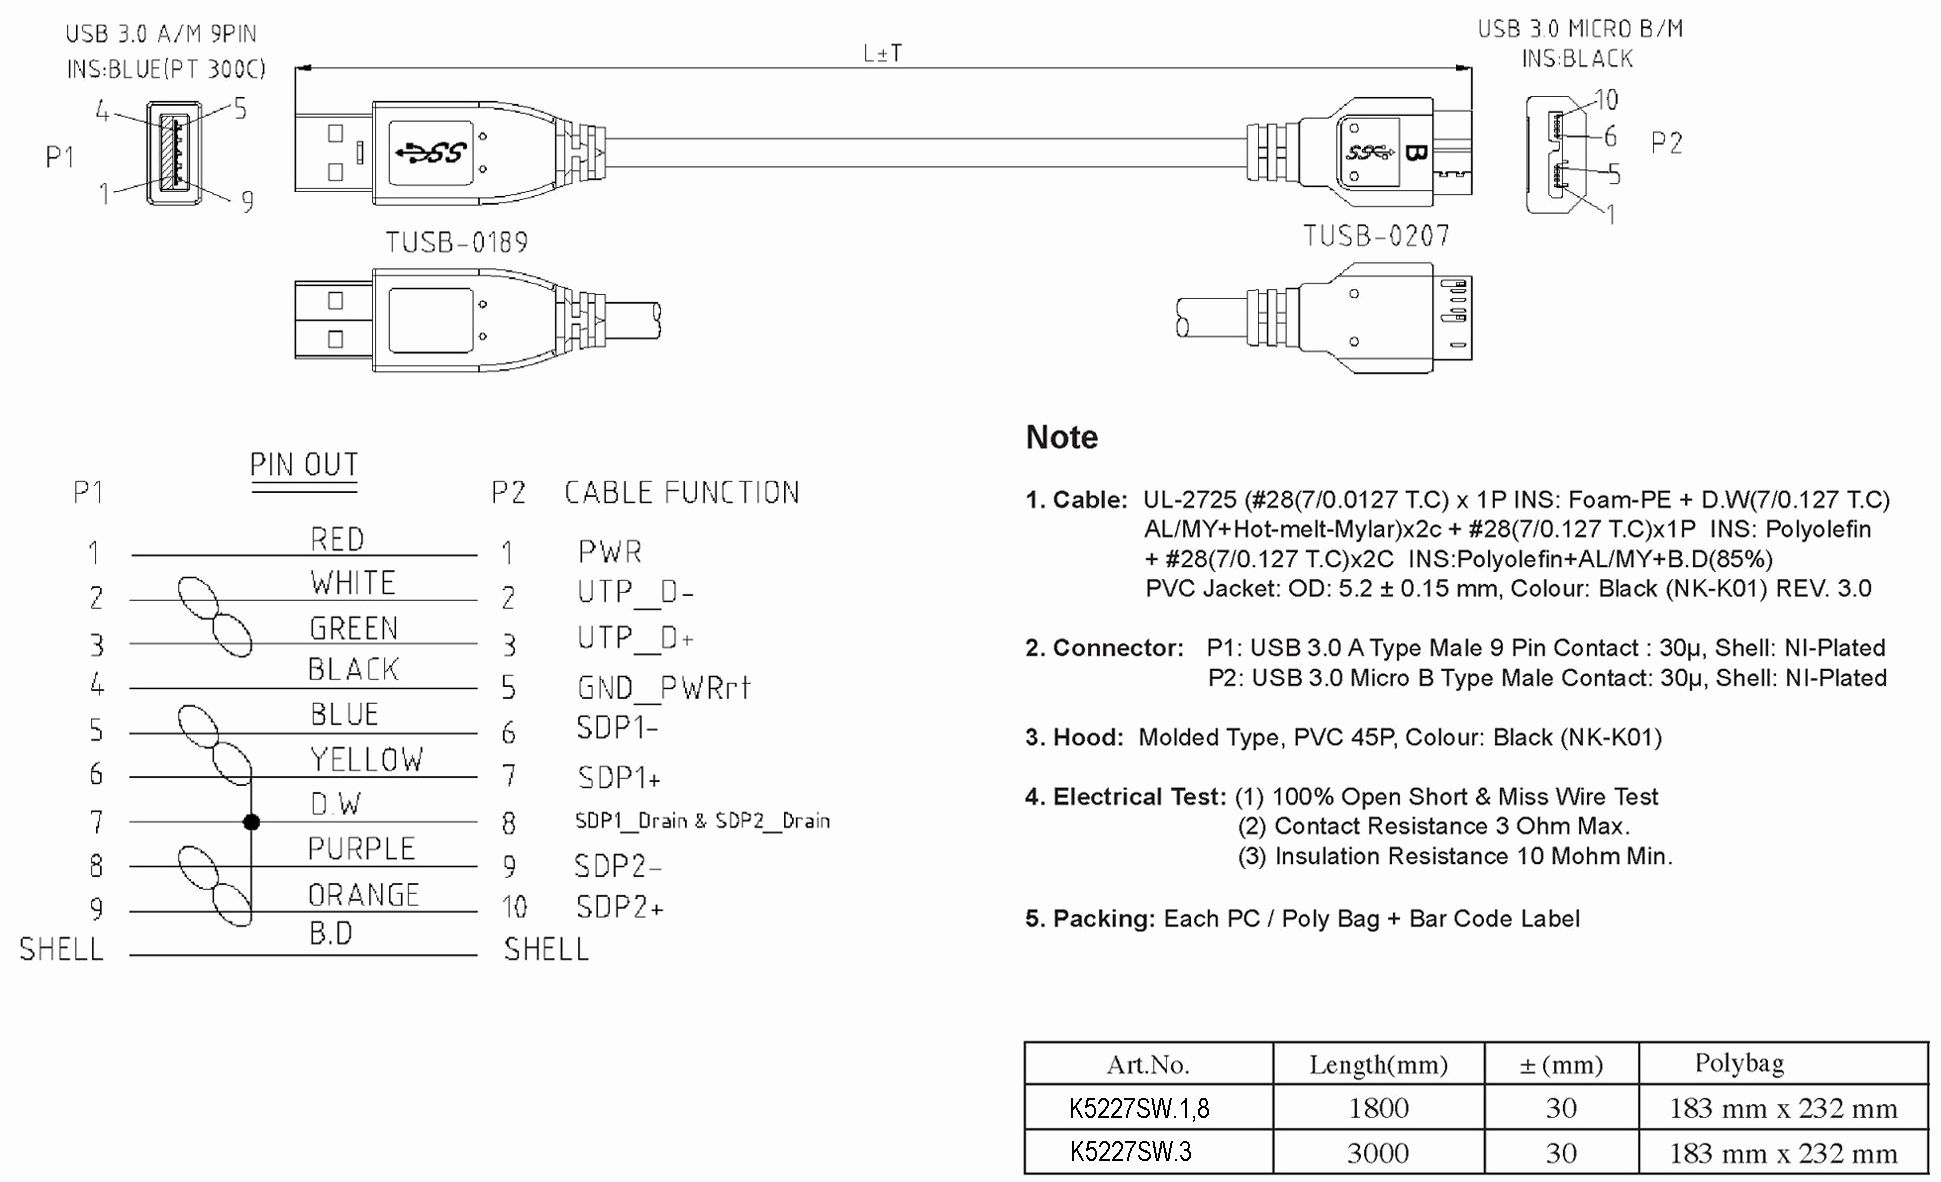 Apple Wiring Diagram - All Wiring Diagram - Usb To Magsafe Wiring Diagram